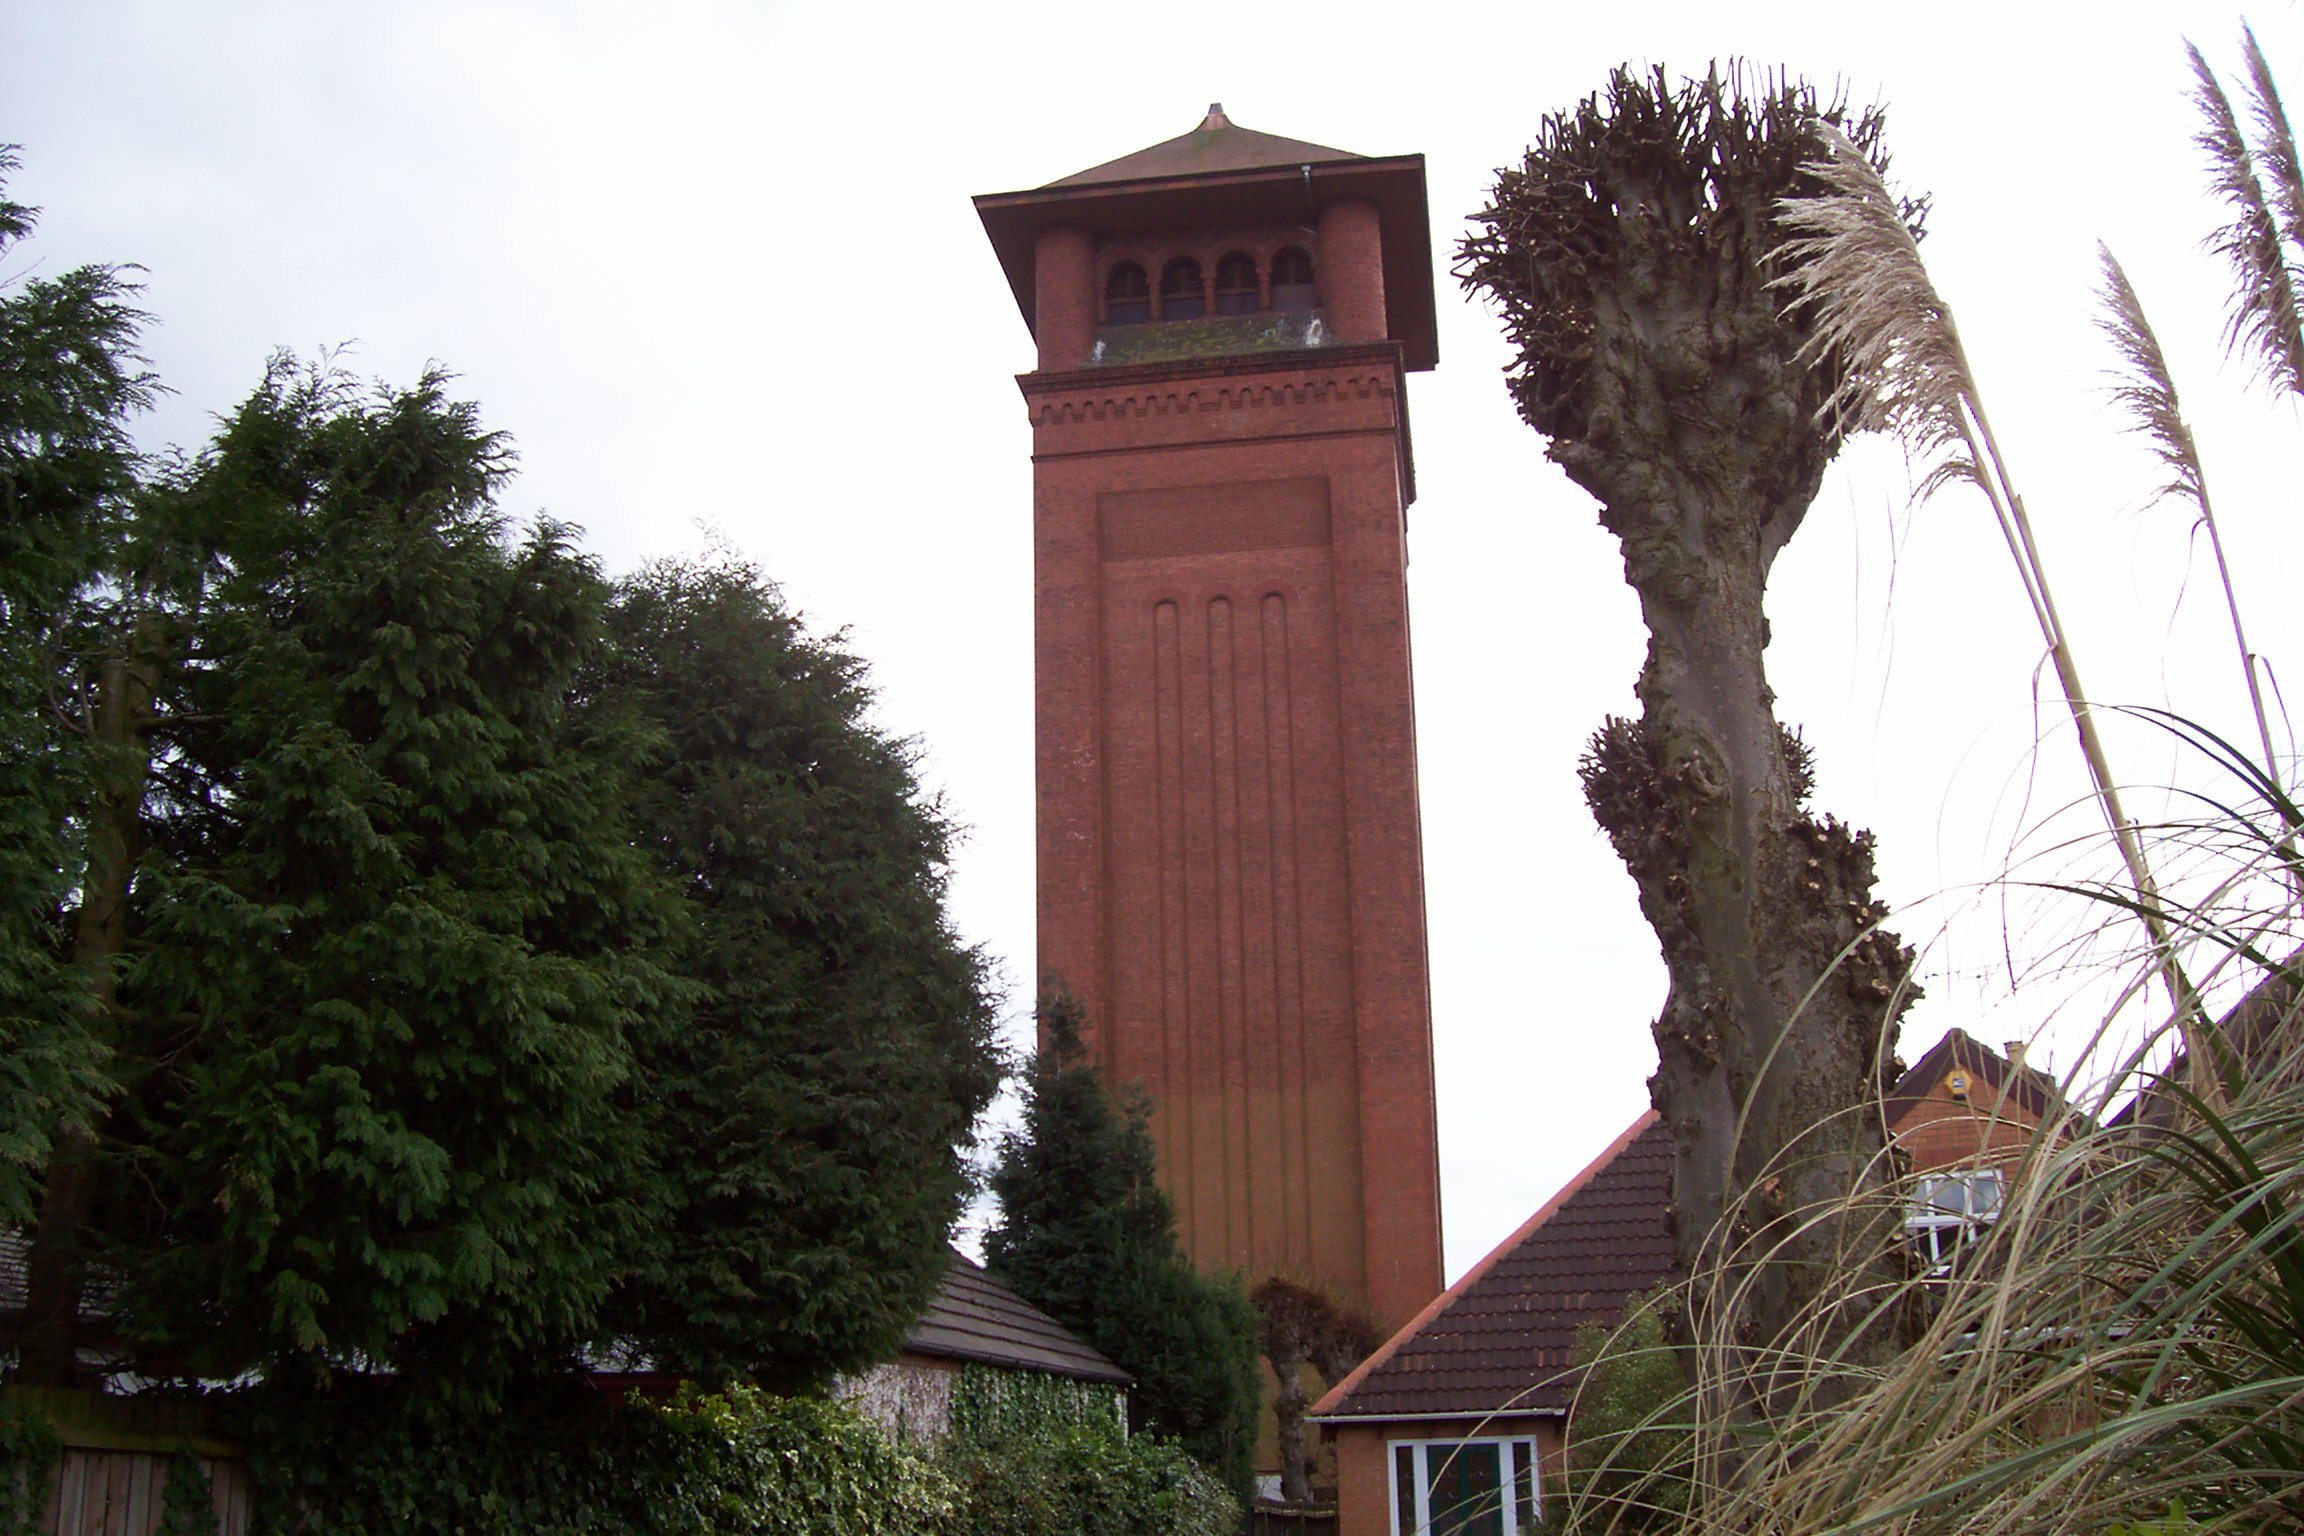 Bedworth Water Tower